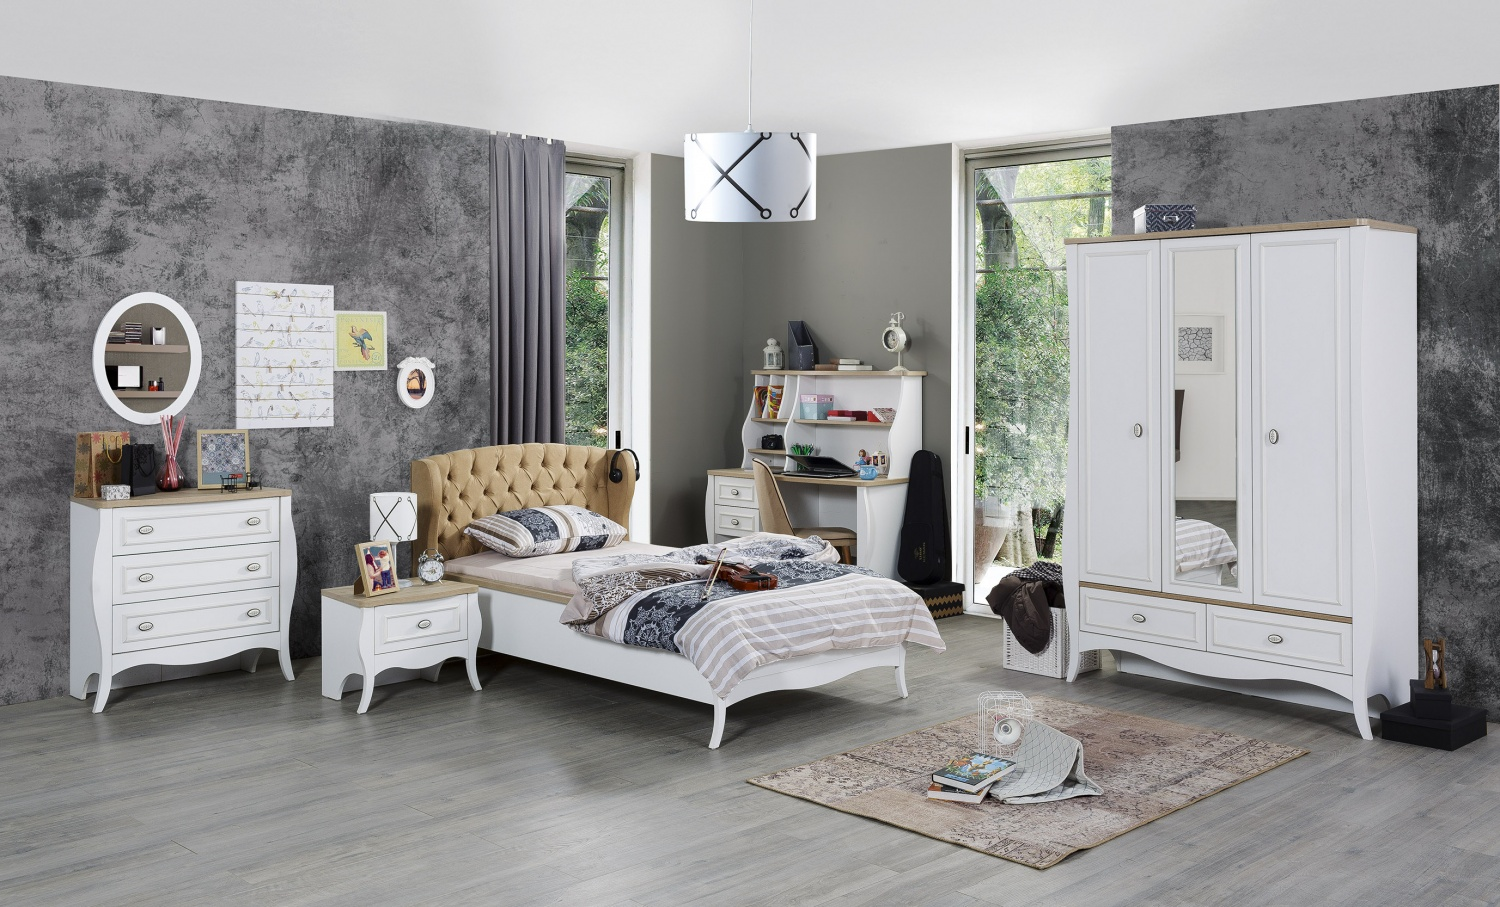 jugendzimmer komplett diamond 5 teilig kaufen bei m bel lux. Black Bedroom Furniture Sets. Home Design Ideas